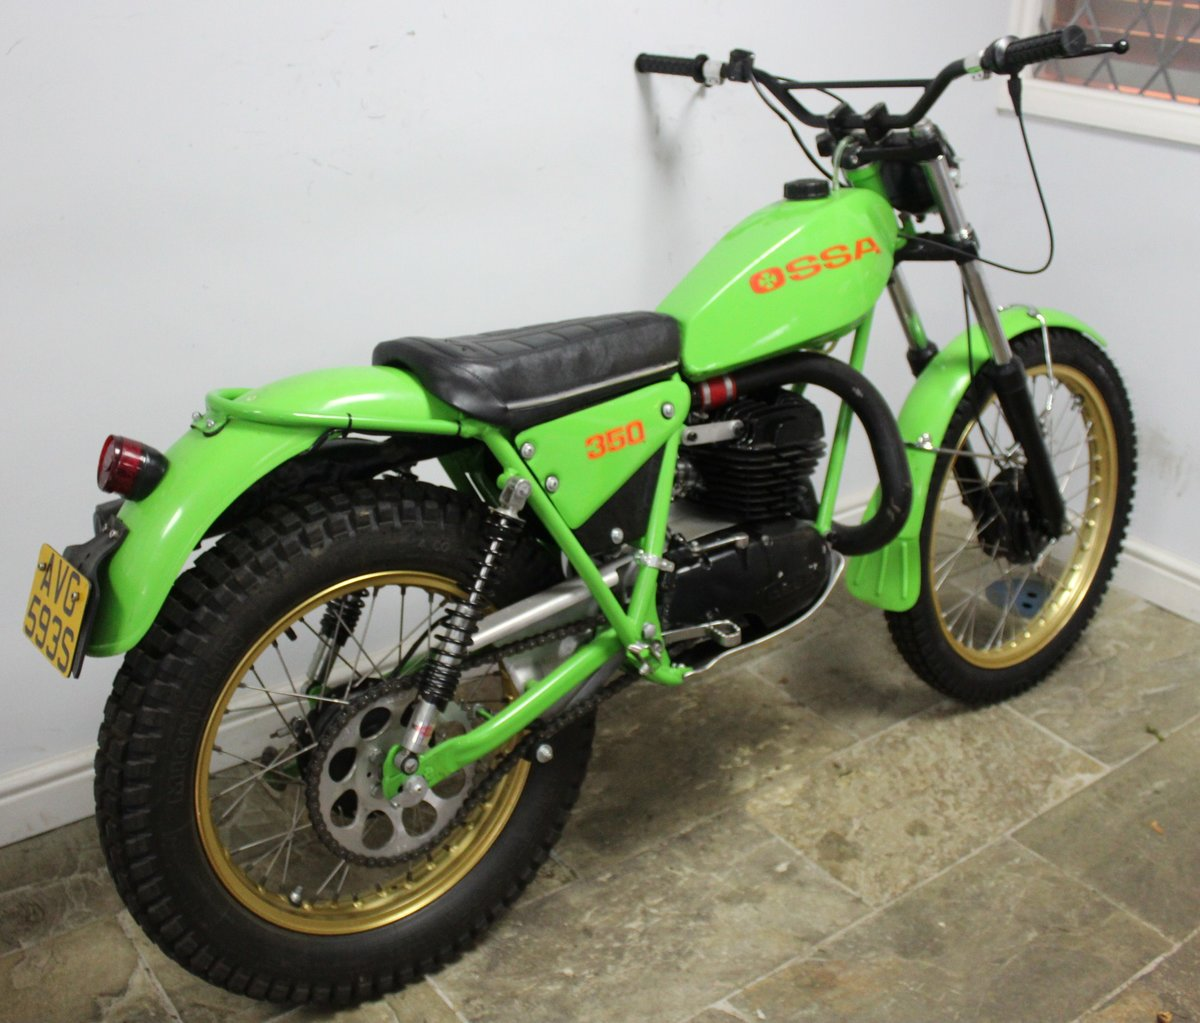 1978 OSSA 302 cc With  5 Speed Gear Box  Road registered SOLD (picture 2 of 6)